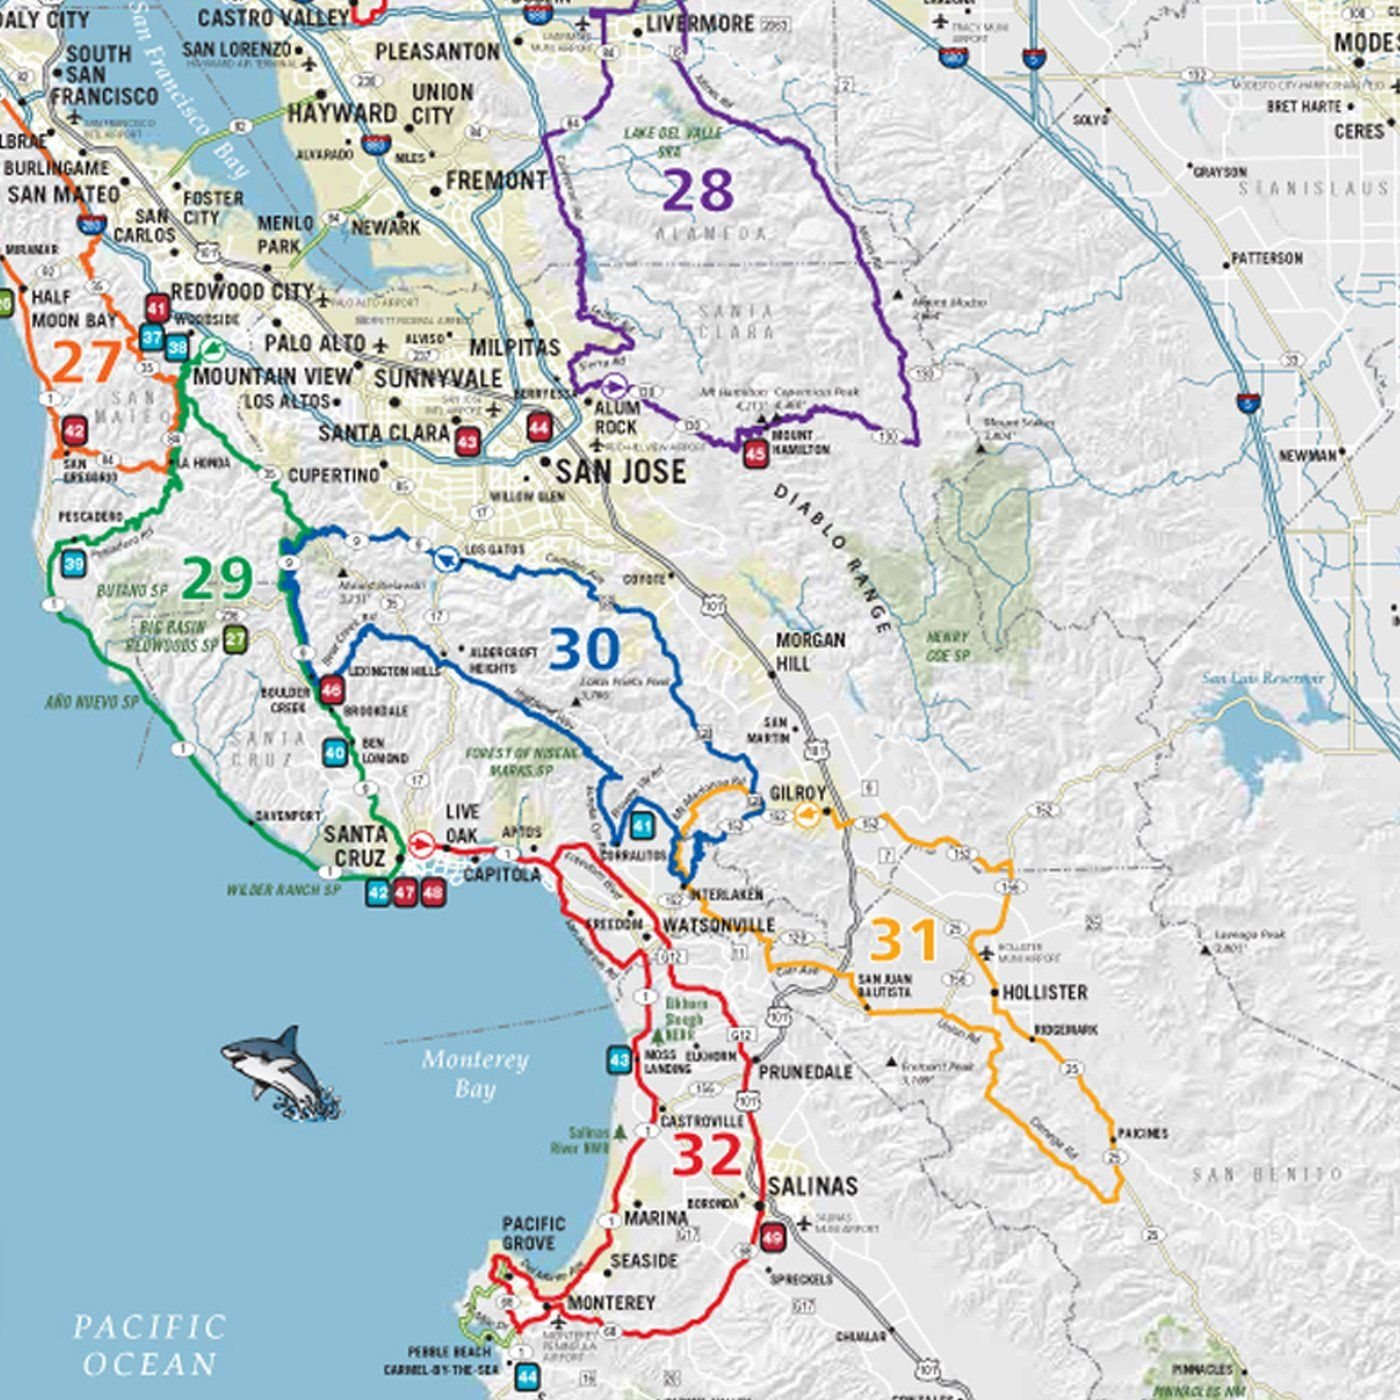 USRT021 - Scenic Road Trips Map of - Northern California ... on california interstate map and towns, california coastal trip planner, california west coast driving route planner, colorado road trip planner, the map of usa trip planner, california coast road trip planner,